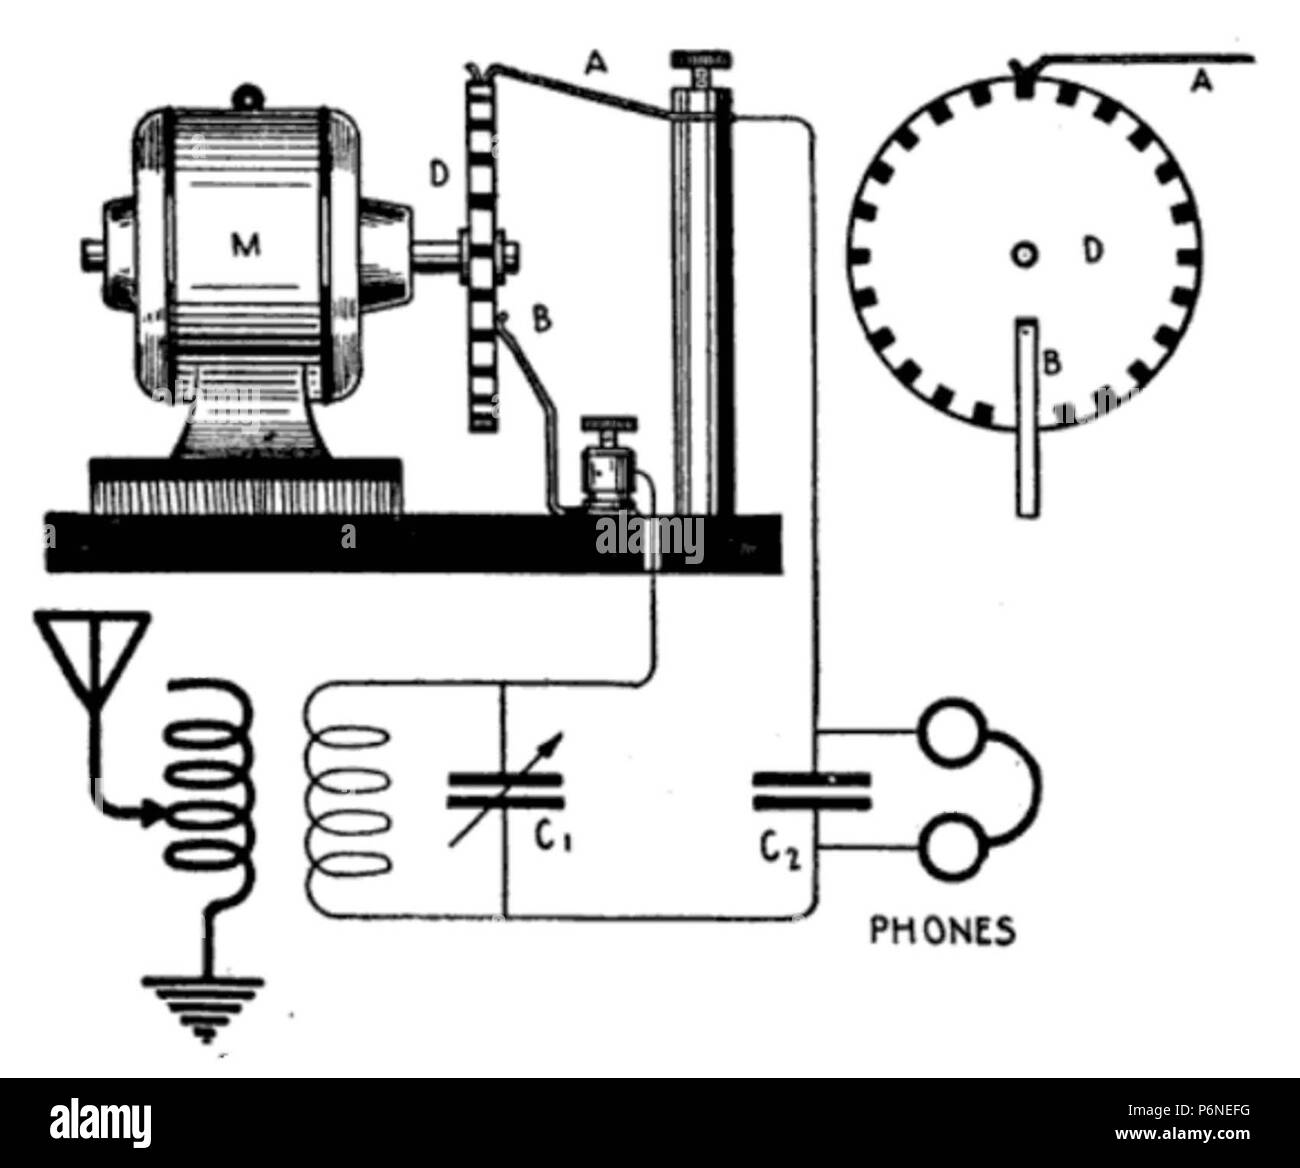 Commutator Black And White Stock Photos Images Alamy Schematic Diagram Of Disk Dynamo Radio Receiver With Poulsen Tikker Consisting A Turned By Motor